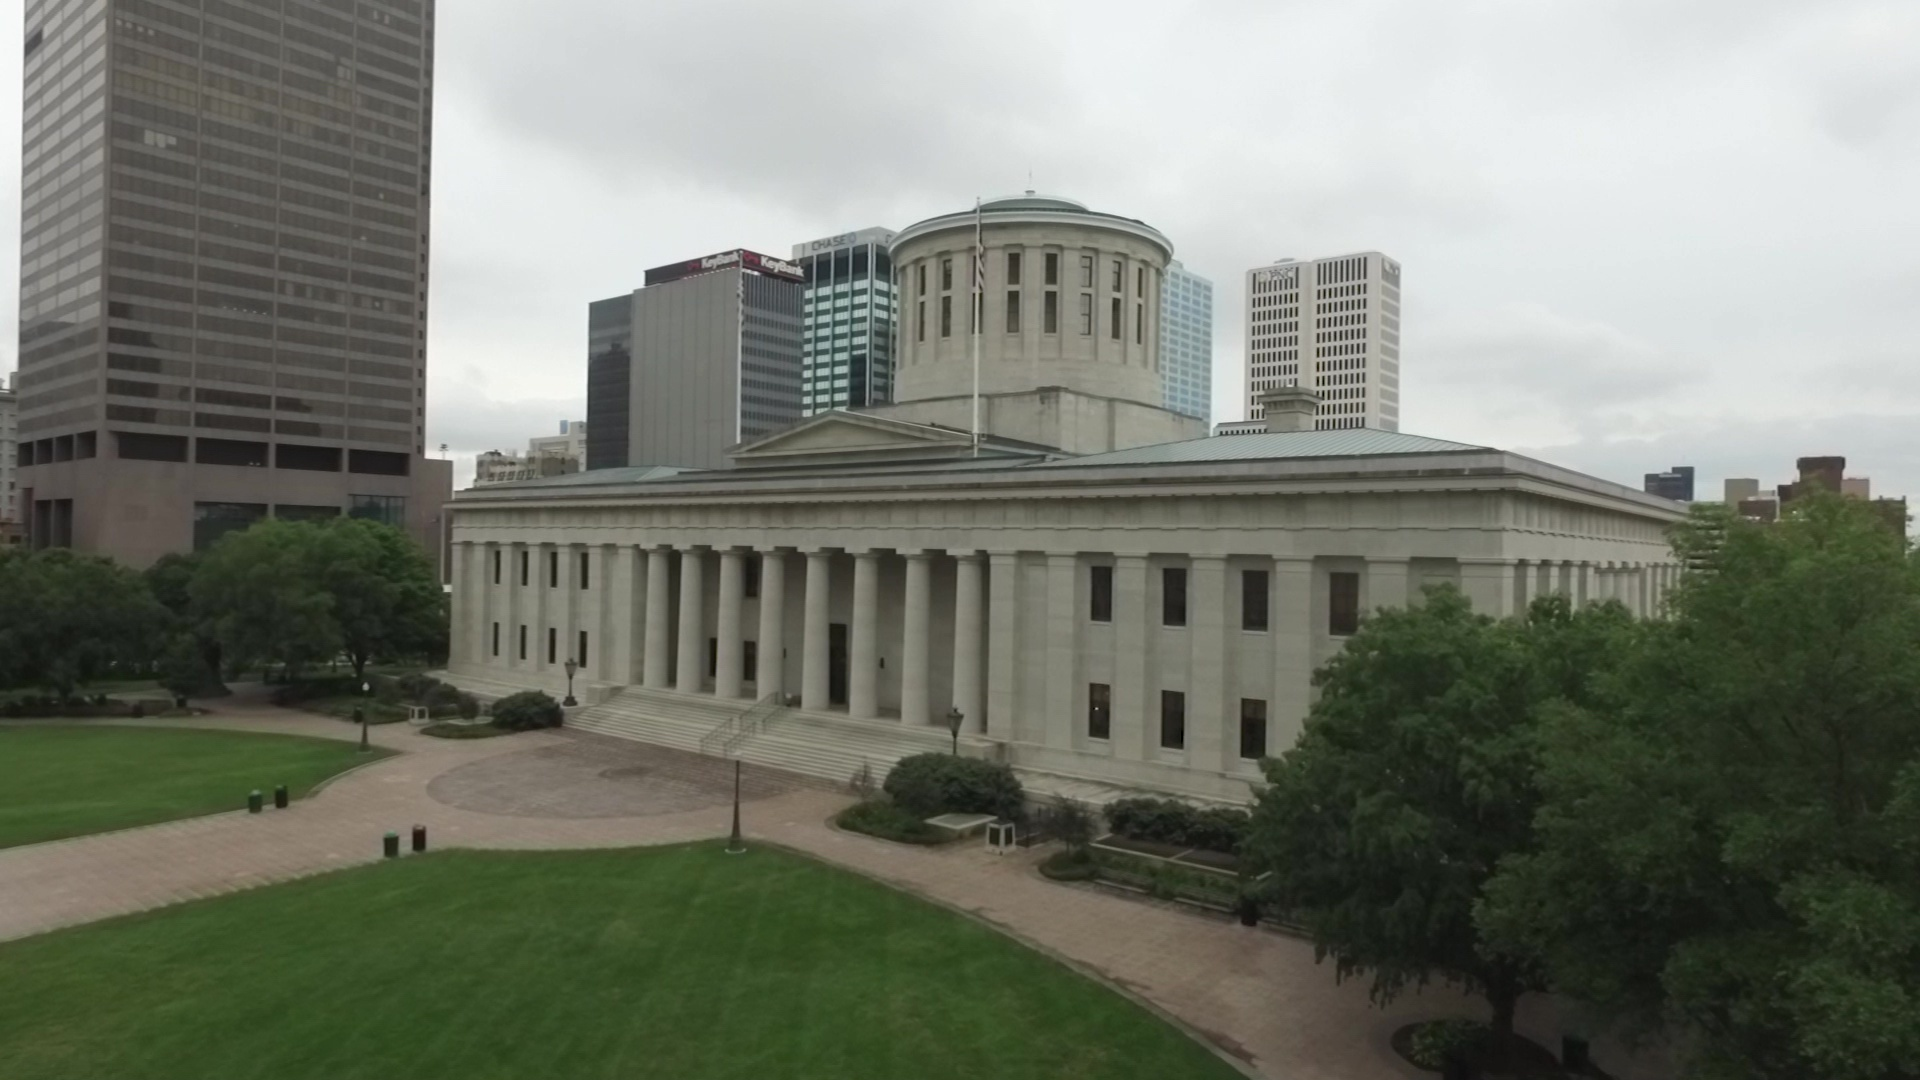 Permit-less carry concealed bill gets another hearingat Ohio Statehouse